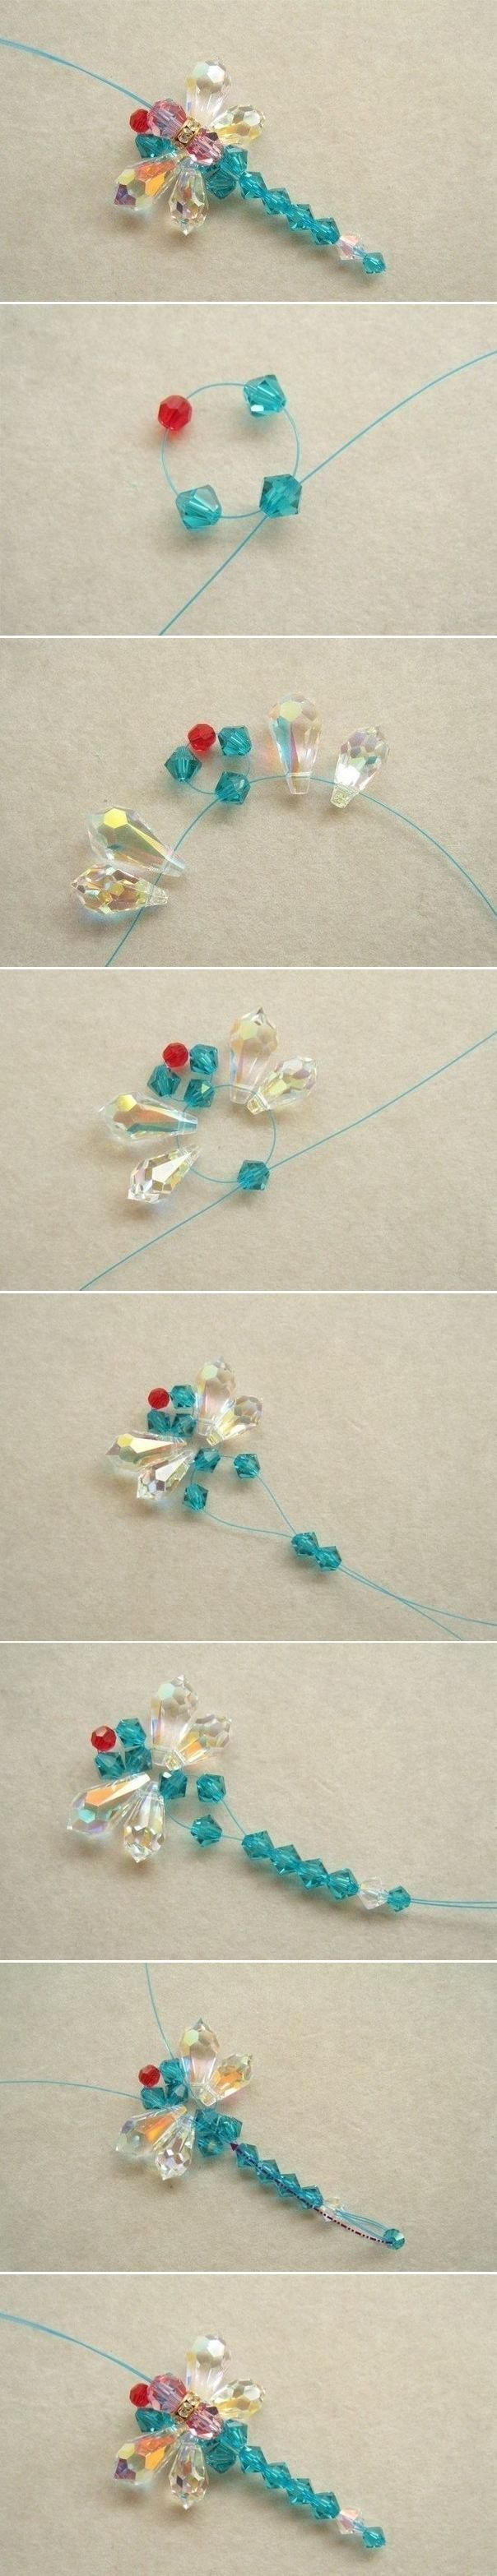 DIY Beaded Dragonfly DIY Beaded Dragonfly: